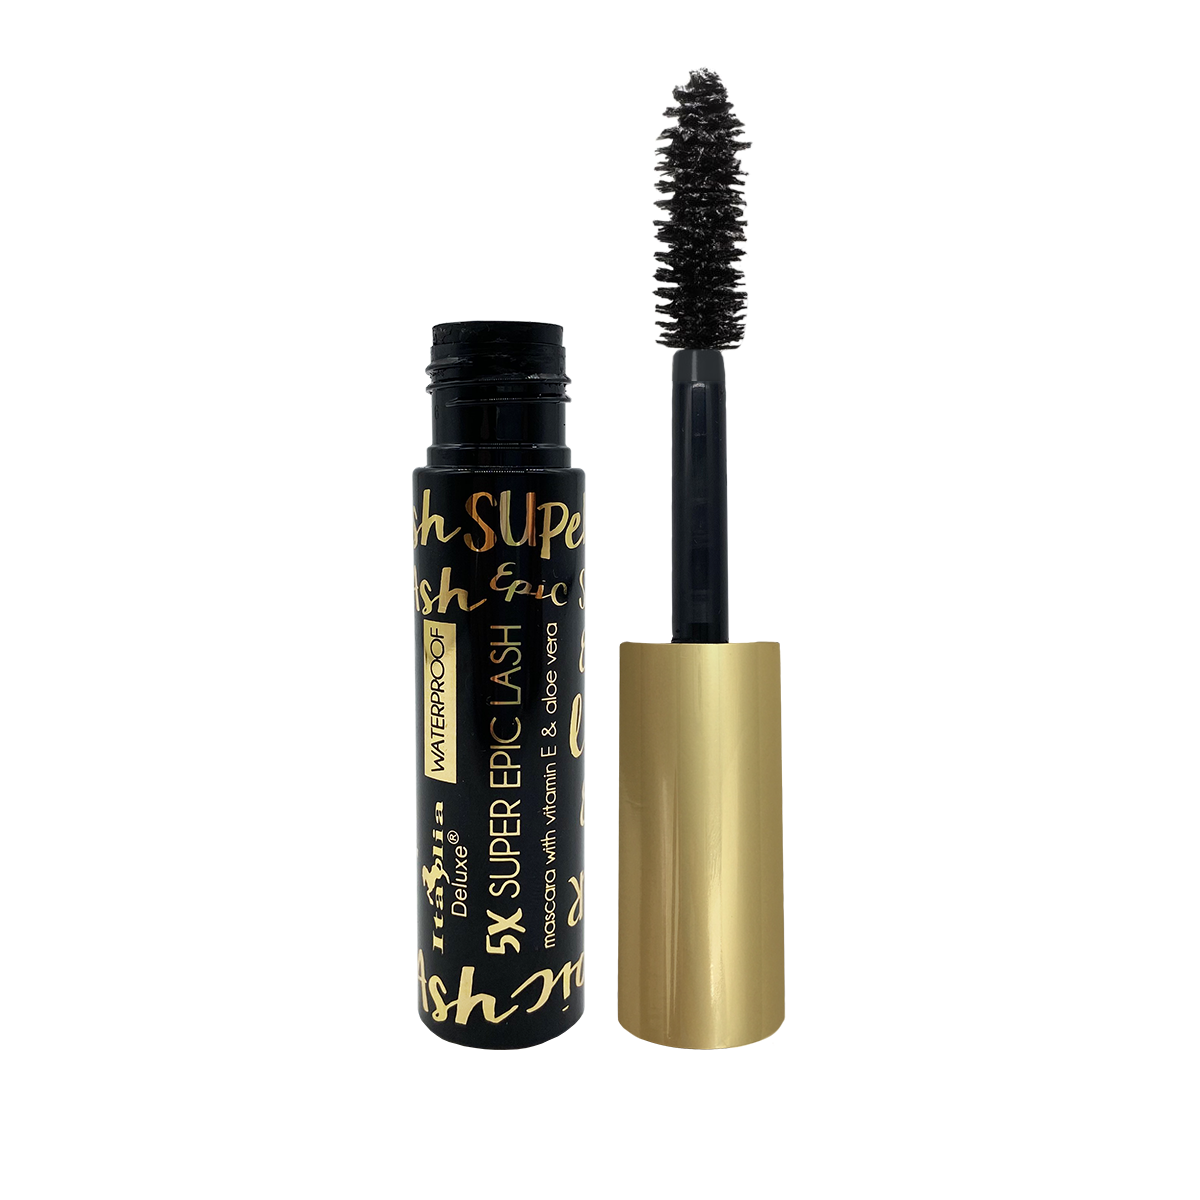 Super Epic Lash Mascara with Jumbo Brush